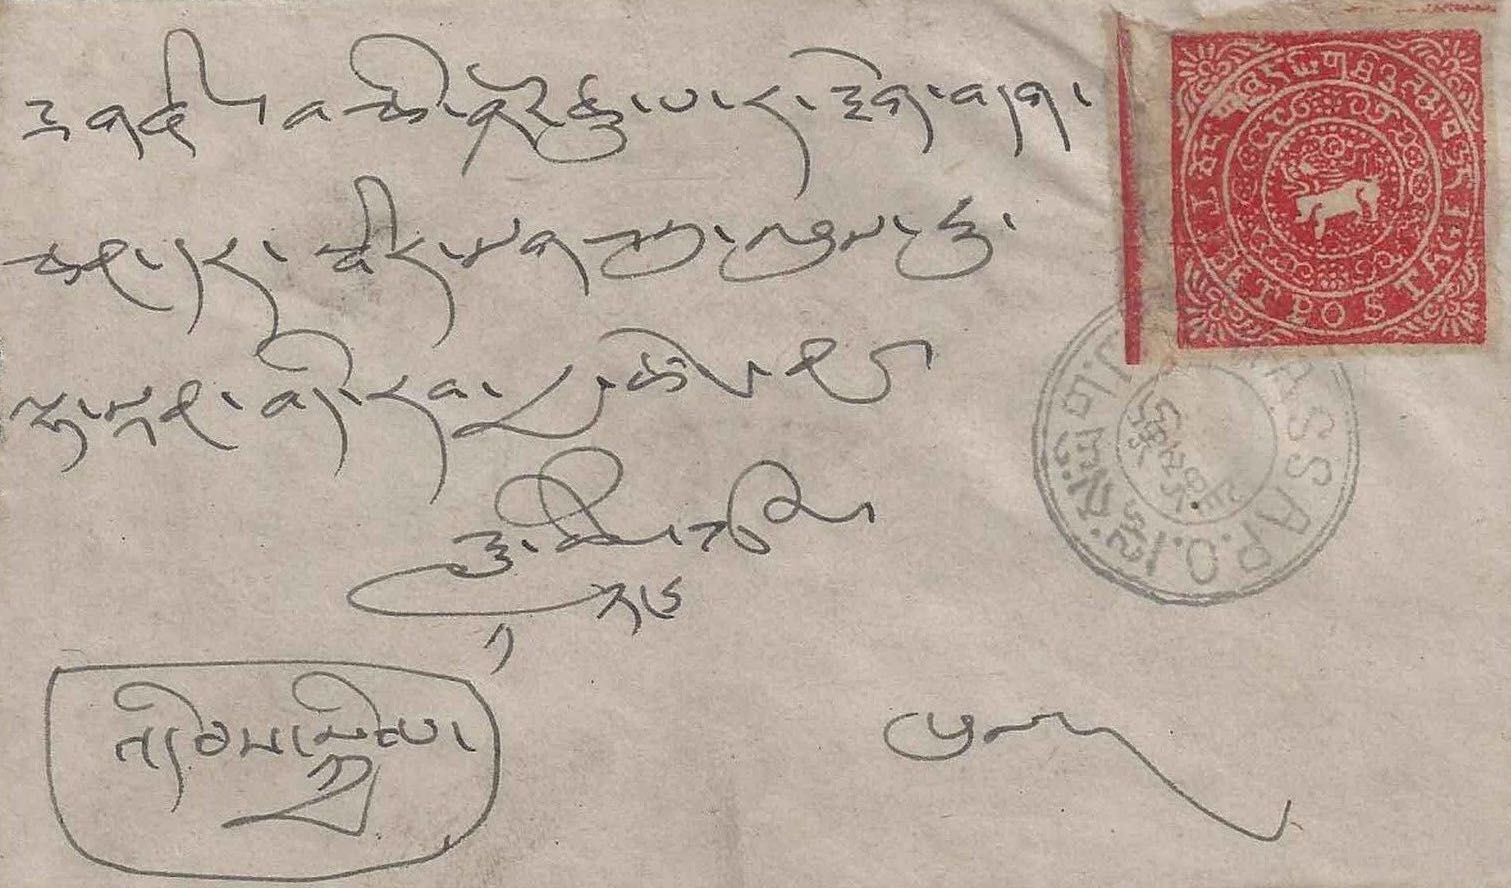 tibet_cover_forgery4